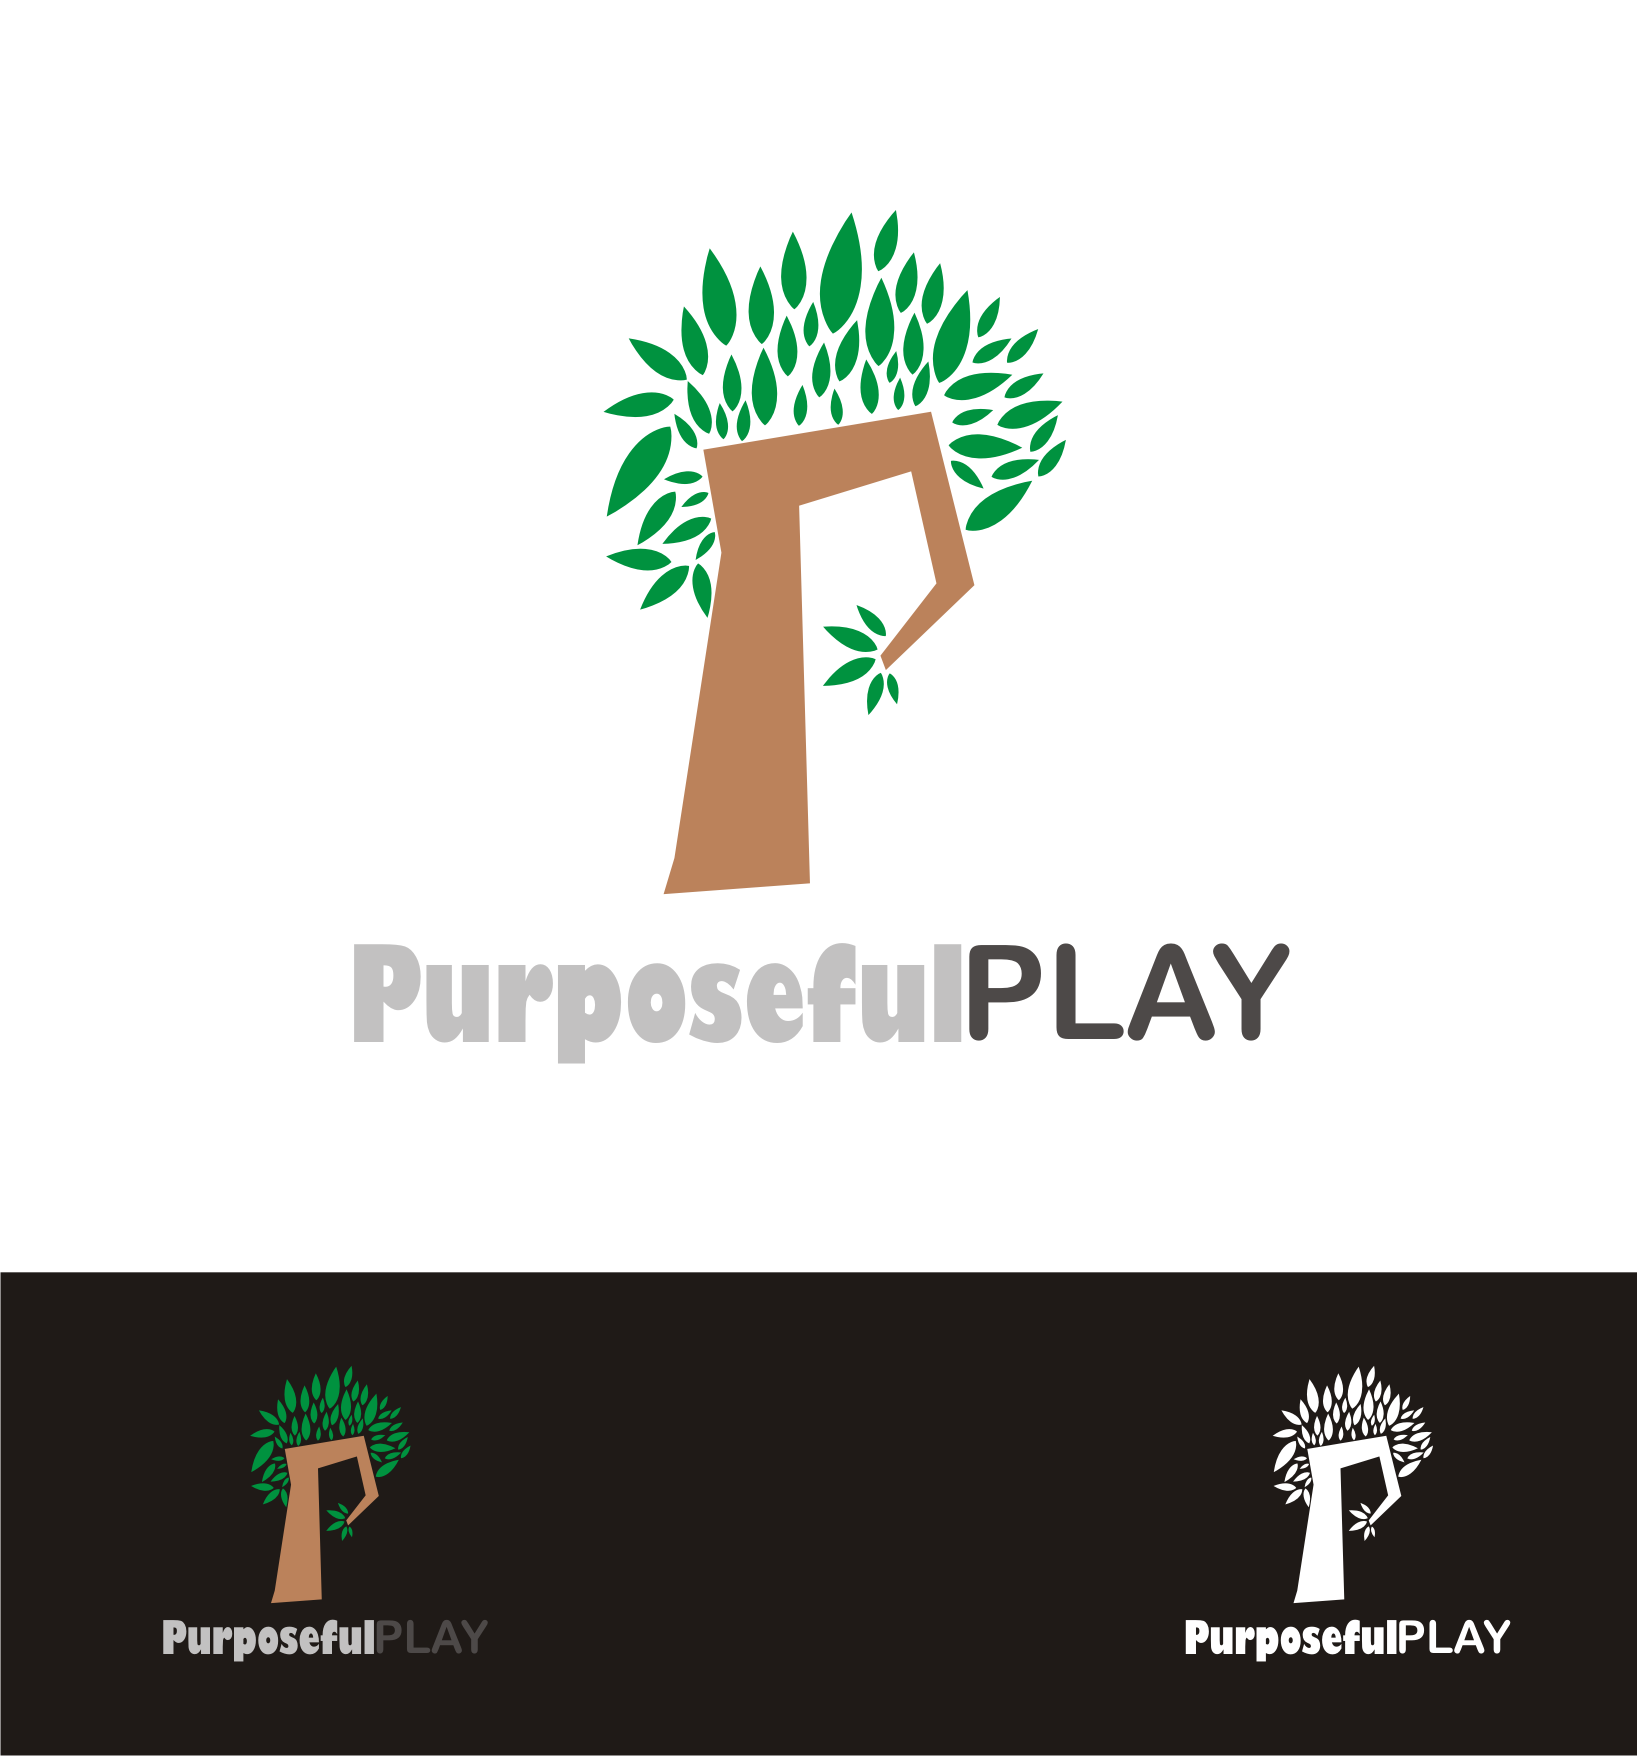 Logo Design by Nthus Nthis - Entry No. 12 in the Logo Design Contest Purposeful PLAY Logo Design.